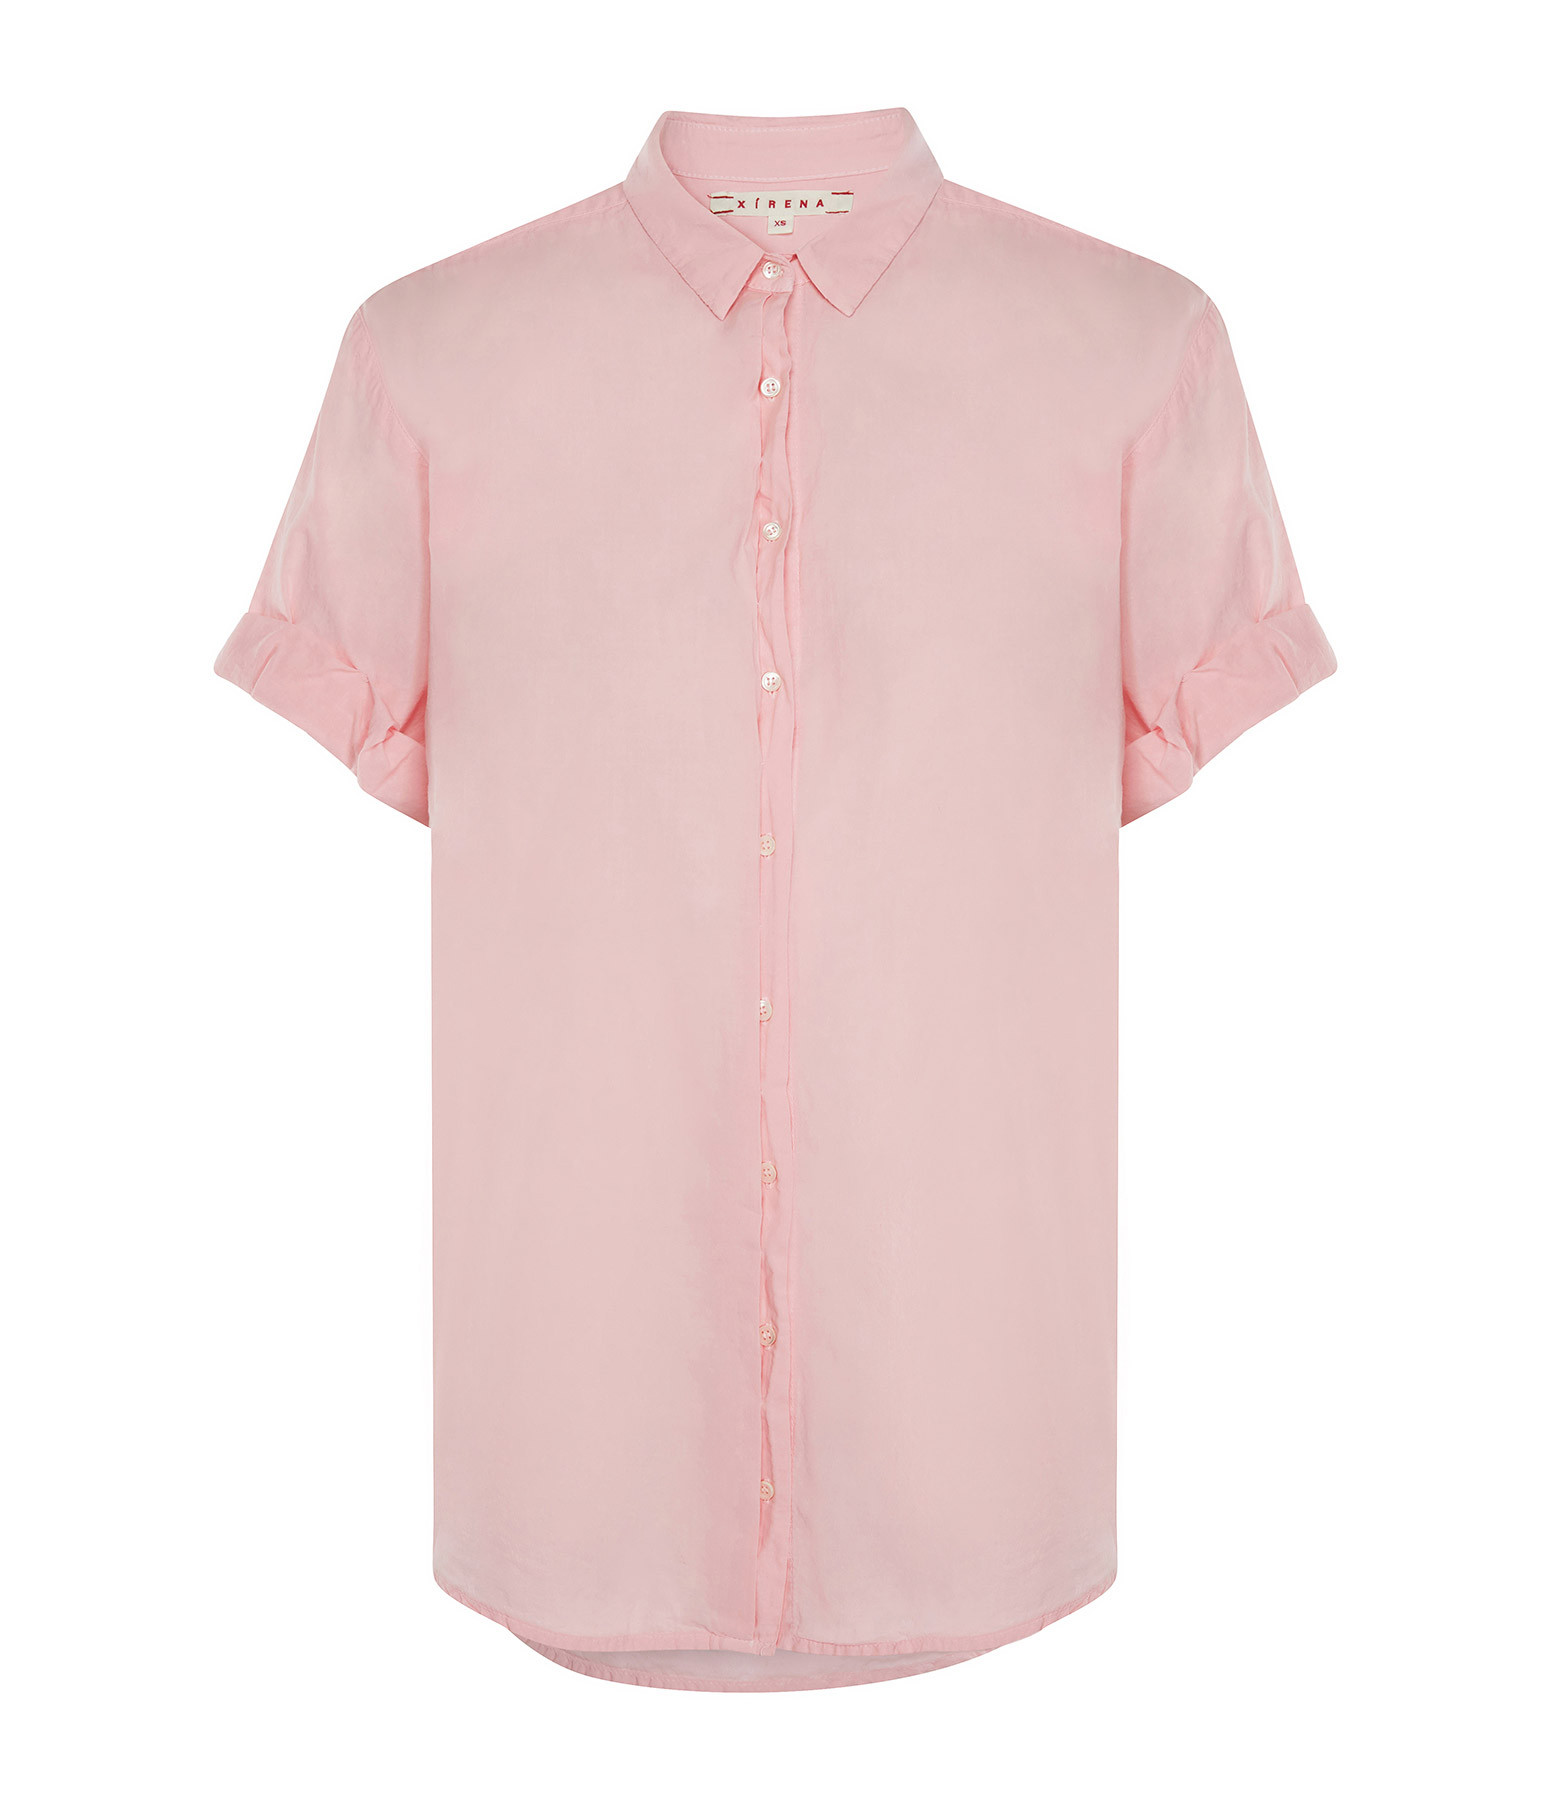 XIRENA - Chemise Channing Coton Rose Corail